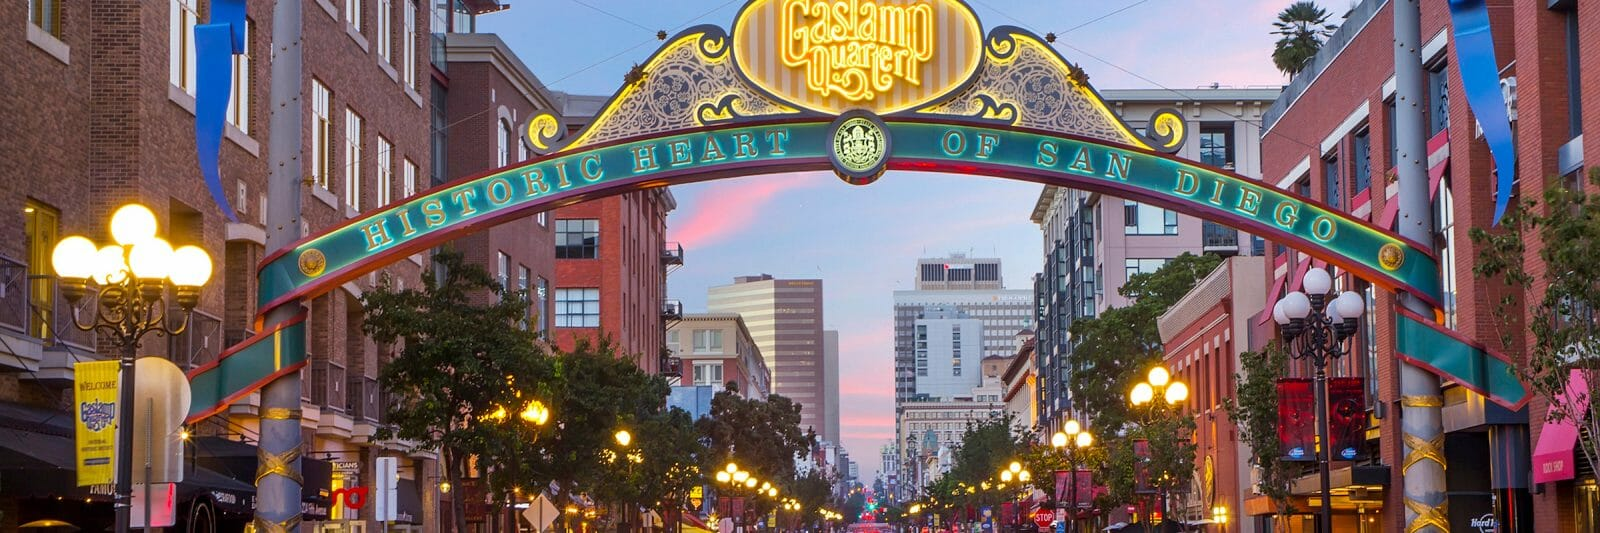 As the sun sets, cars zoom underneath the lit sign reading Gaslamp District in San Diego, California